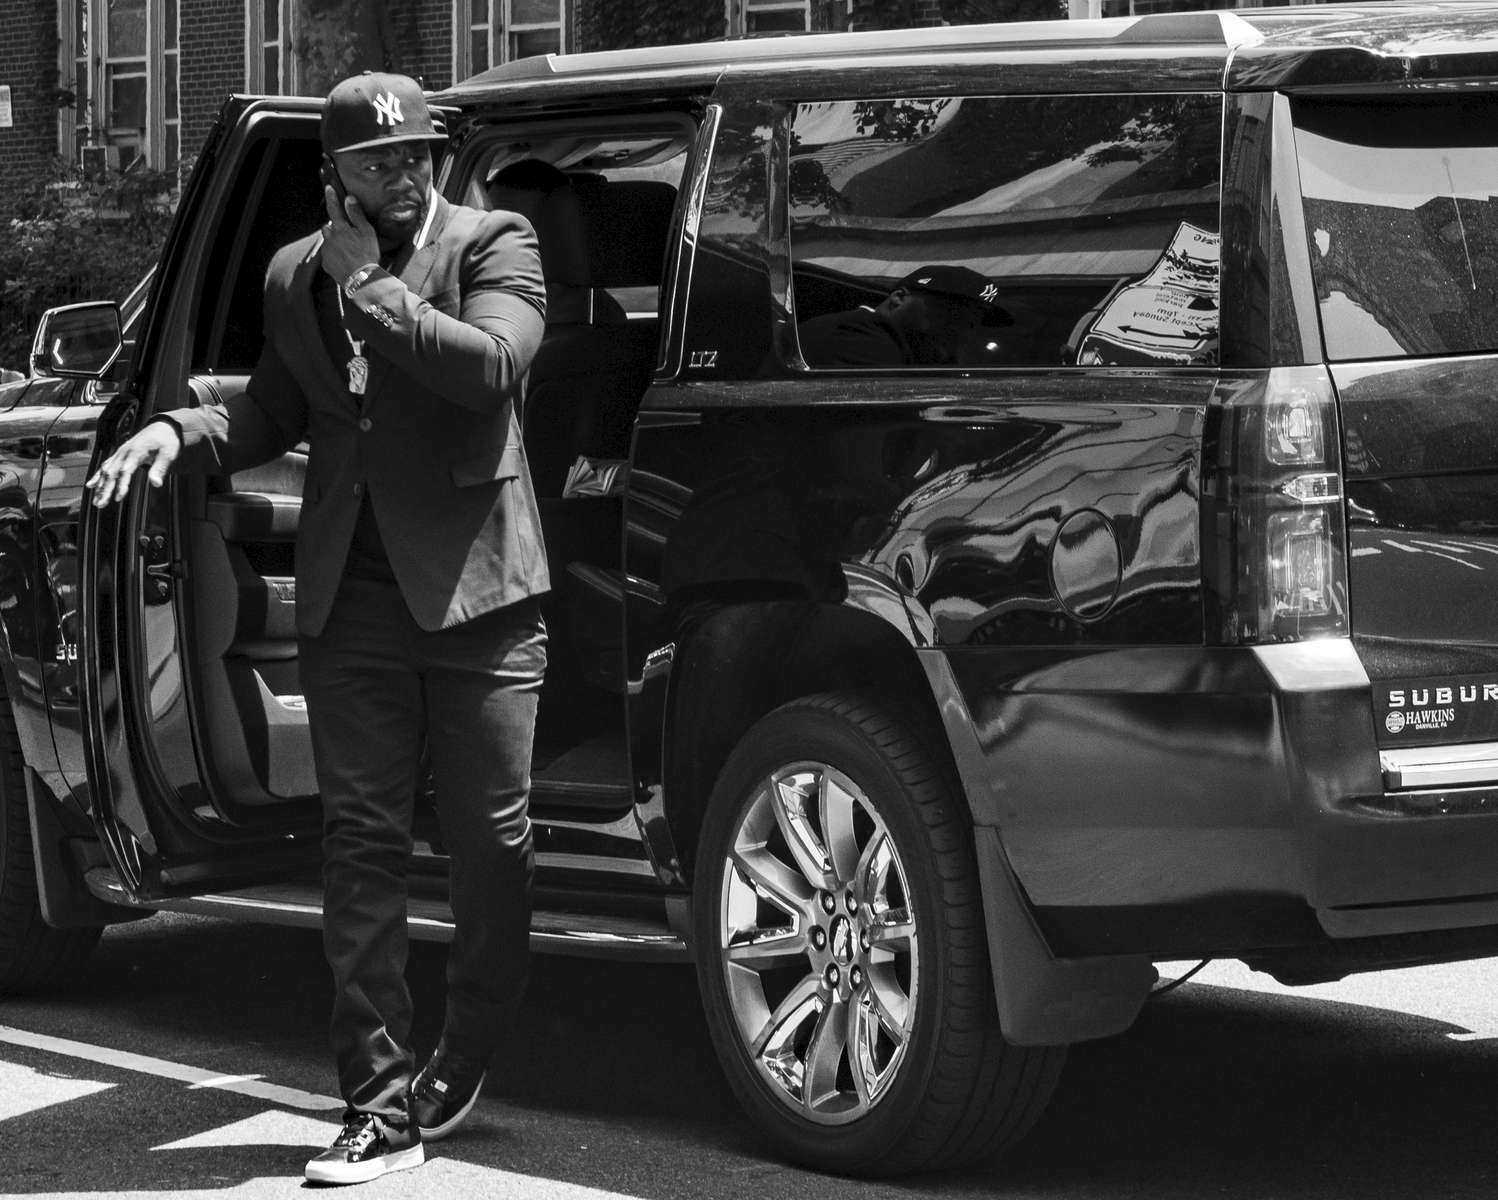 Hip-hop superstar Curtis Jackson, aka 50 Cent, joined other celebrities and musicians who had come to pay respect at the funeral of legendary rapper Prodigy at the Frank E. Campbell Funeral Chapel in New York on June 29, 2017.